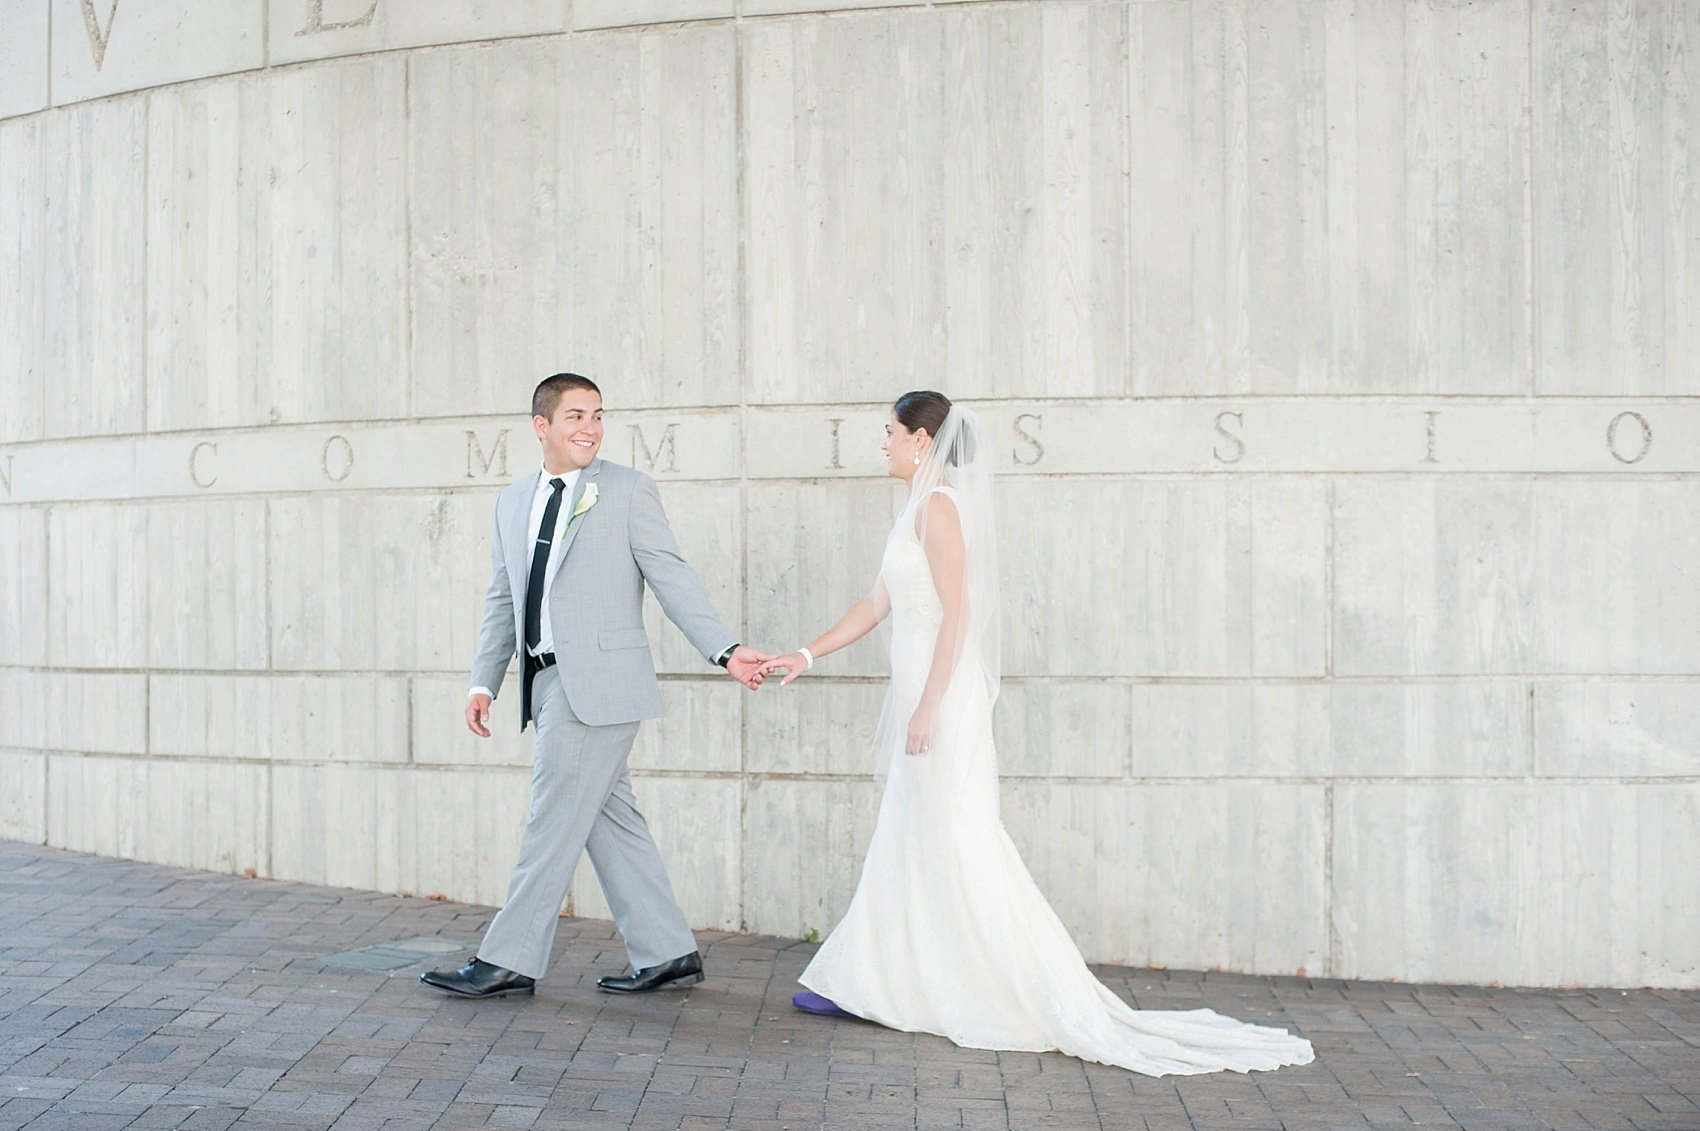 Portraits at Sawyer Point for downtown Cincinnati, Ohio wedding at The Center. Photos by Mikkel Paige Photography.